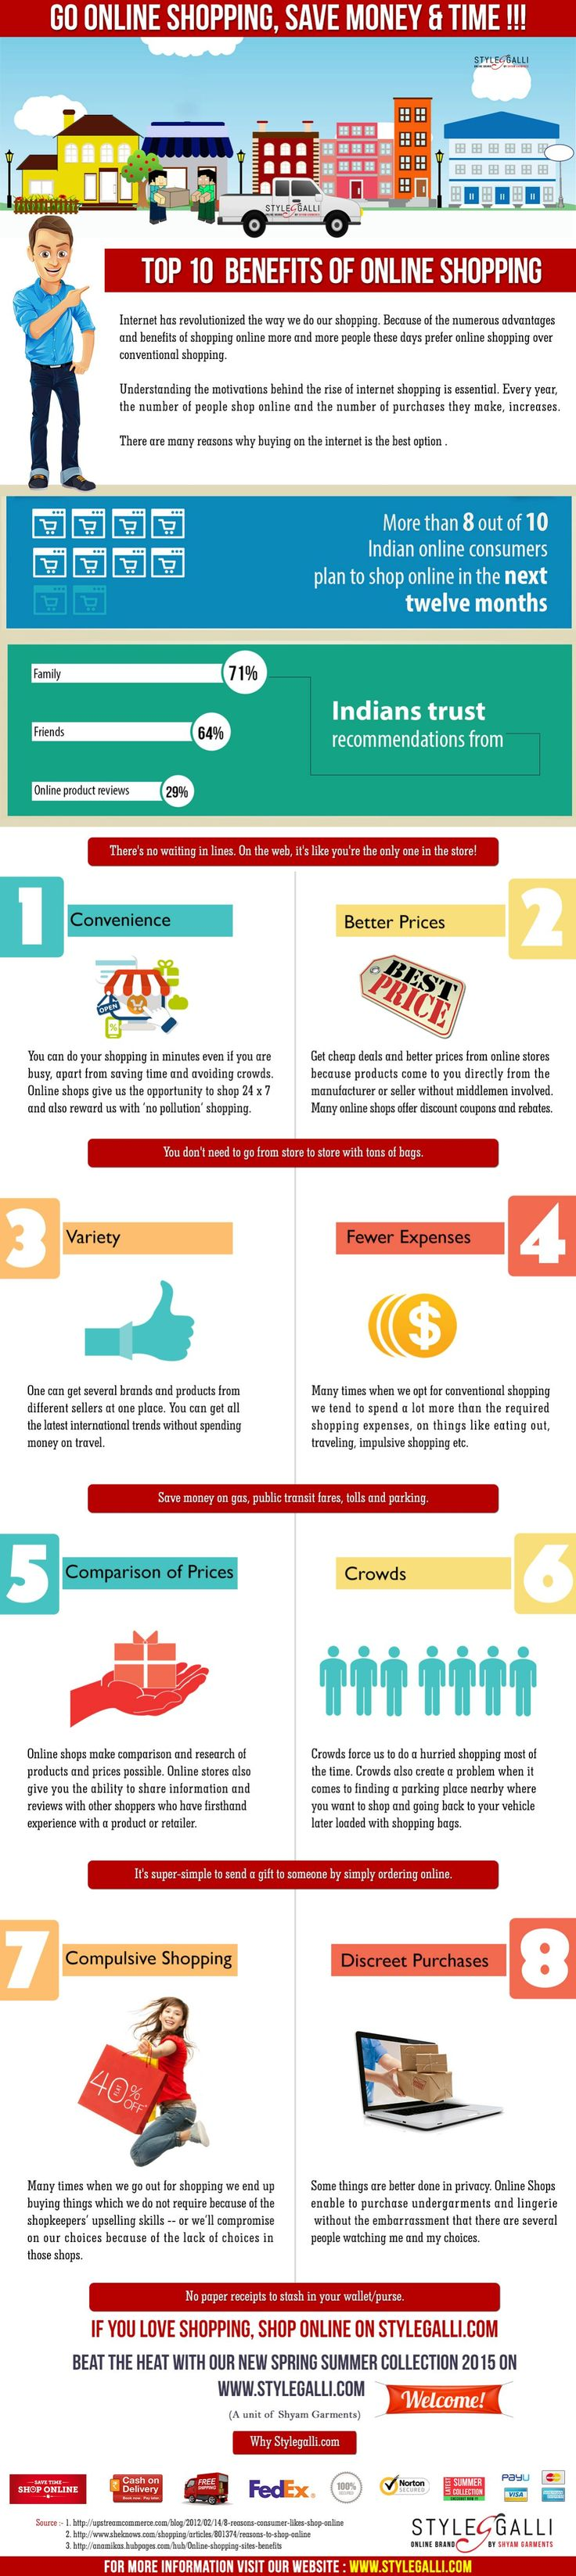 Top 10 Benefits of Online Shopping - Imgur